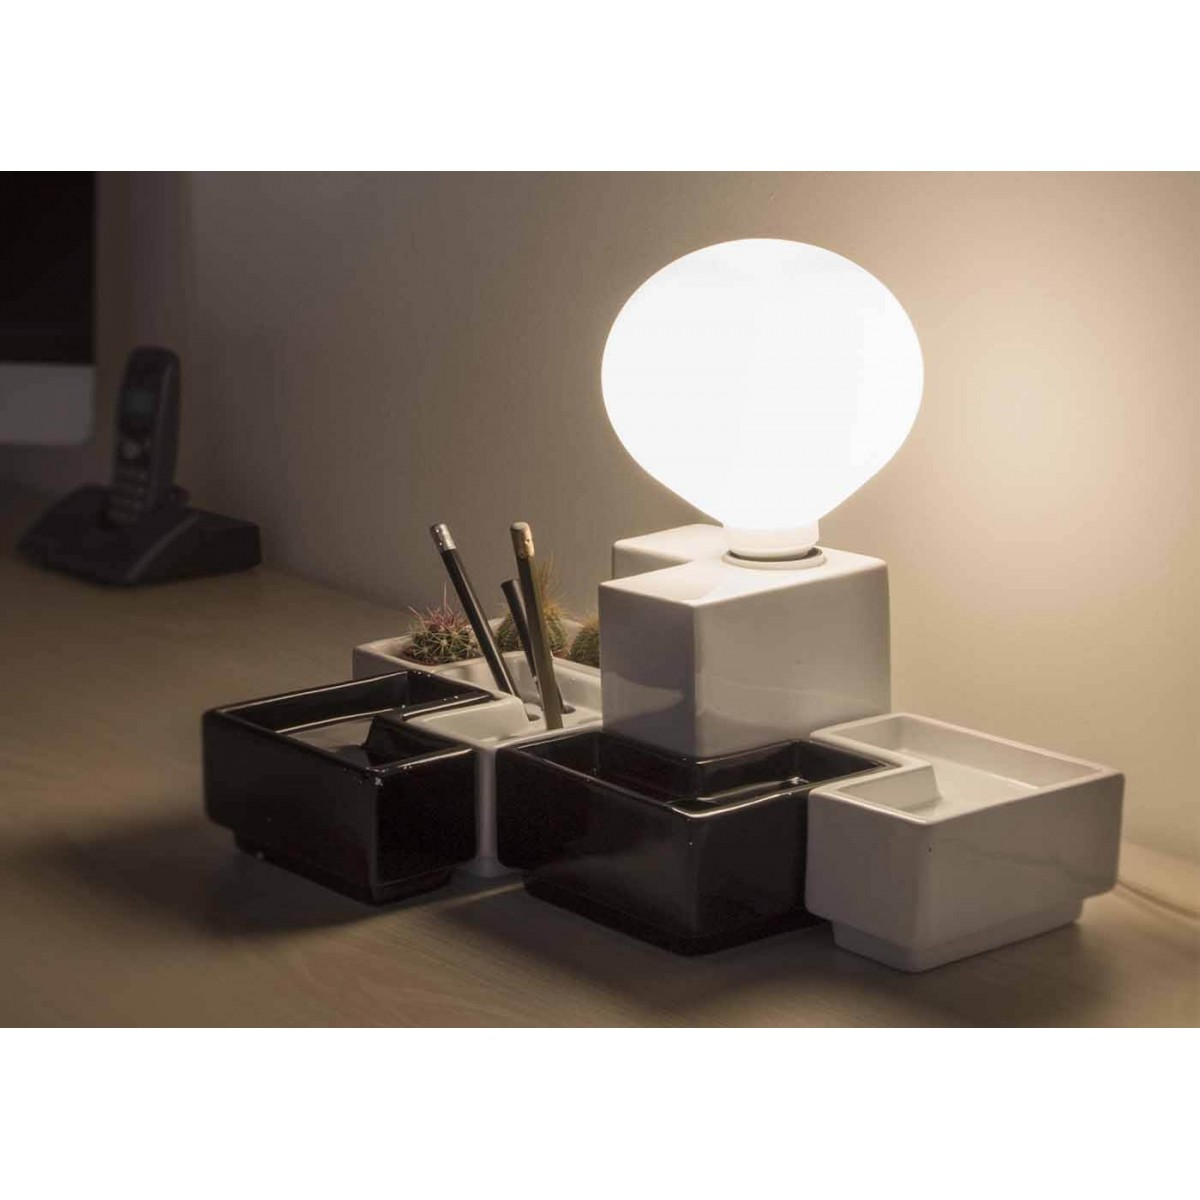 lampe et accessoires de bureau smart desk par ecotono. Black Bedroom Furniture Sets. Home Design Ideas